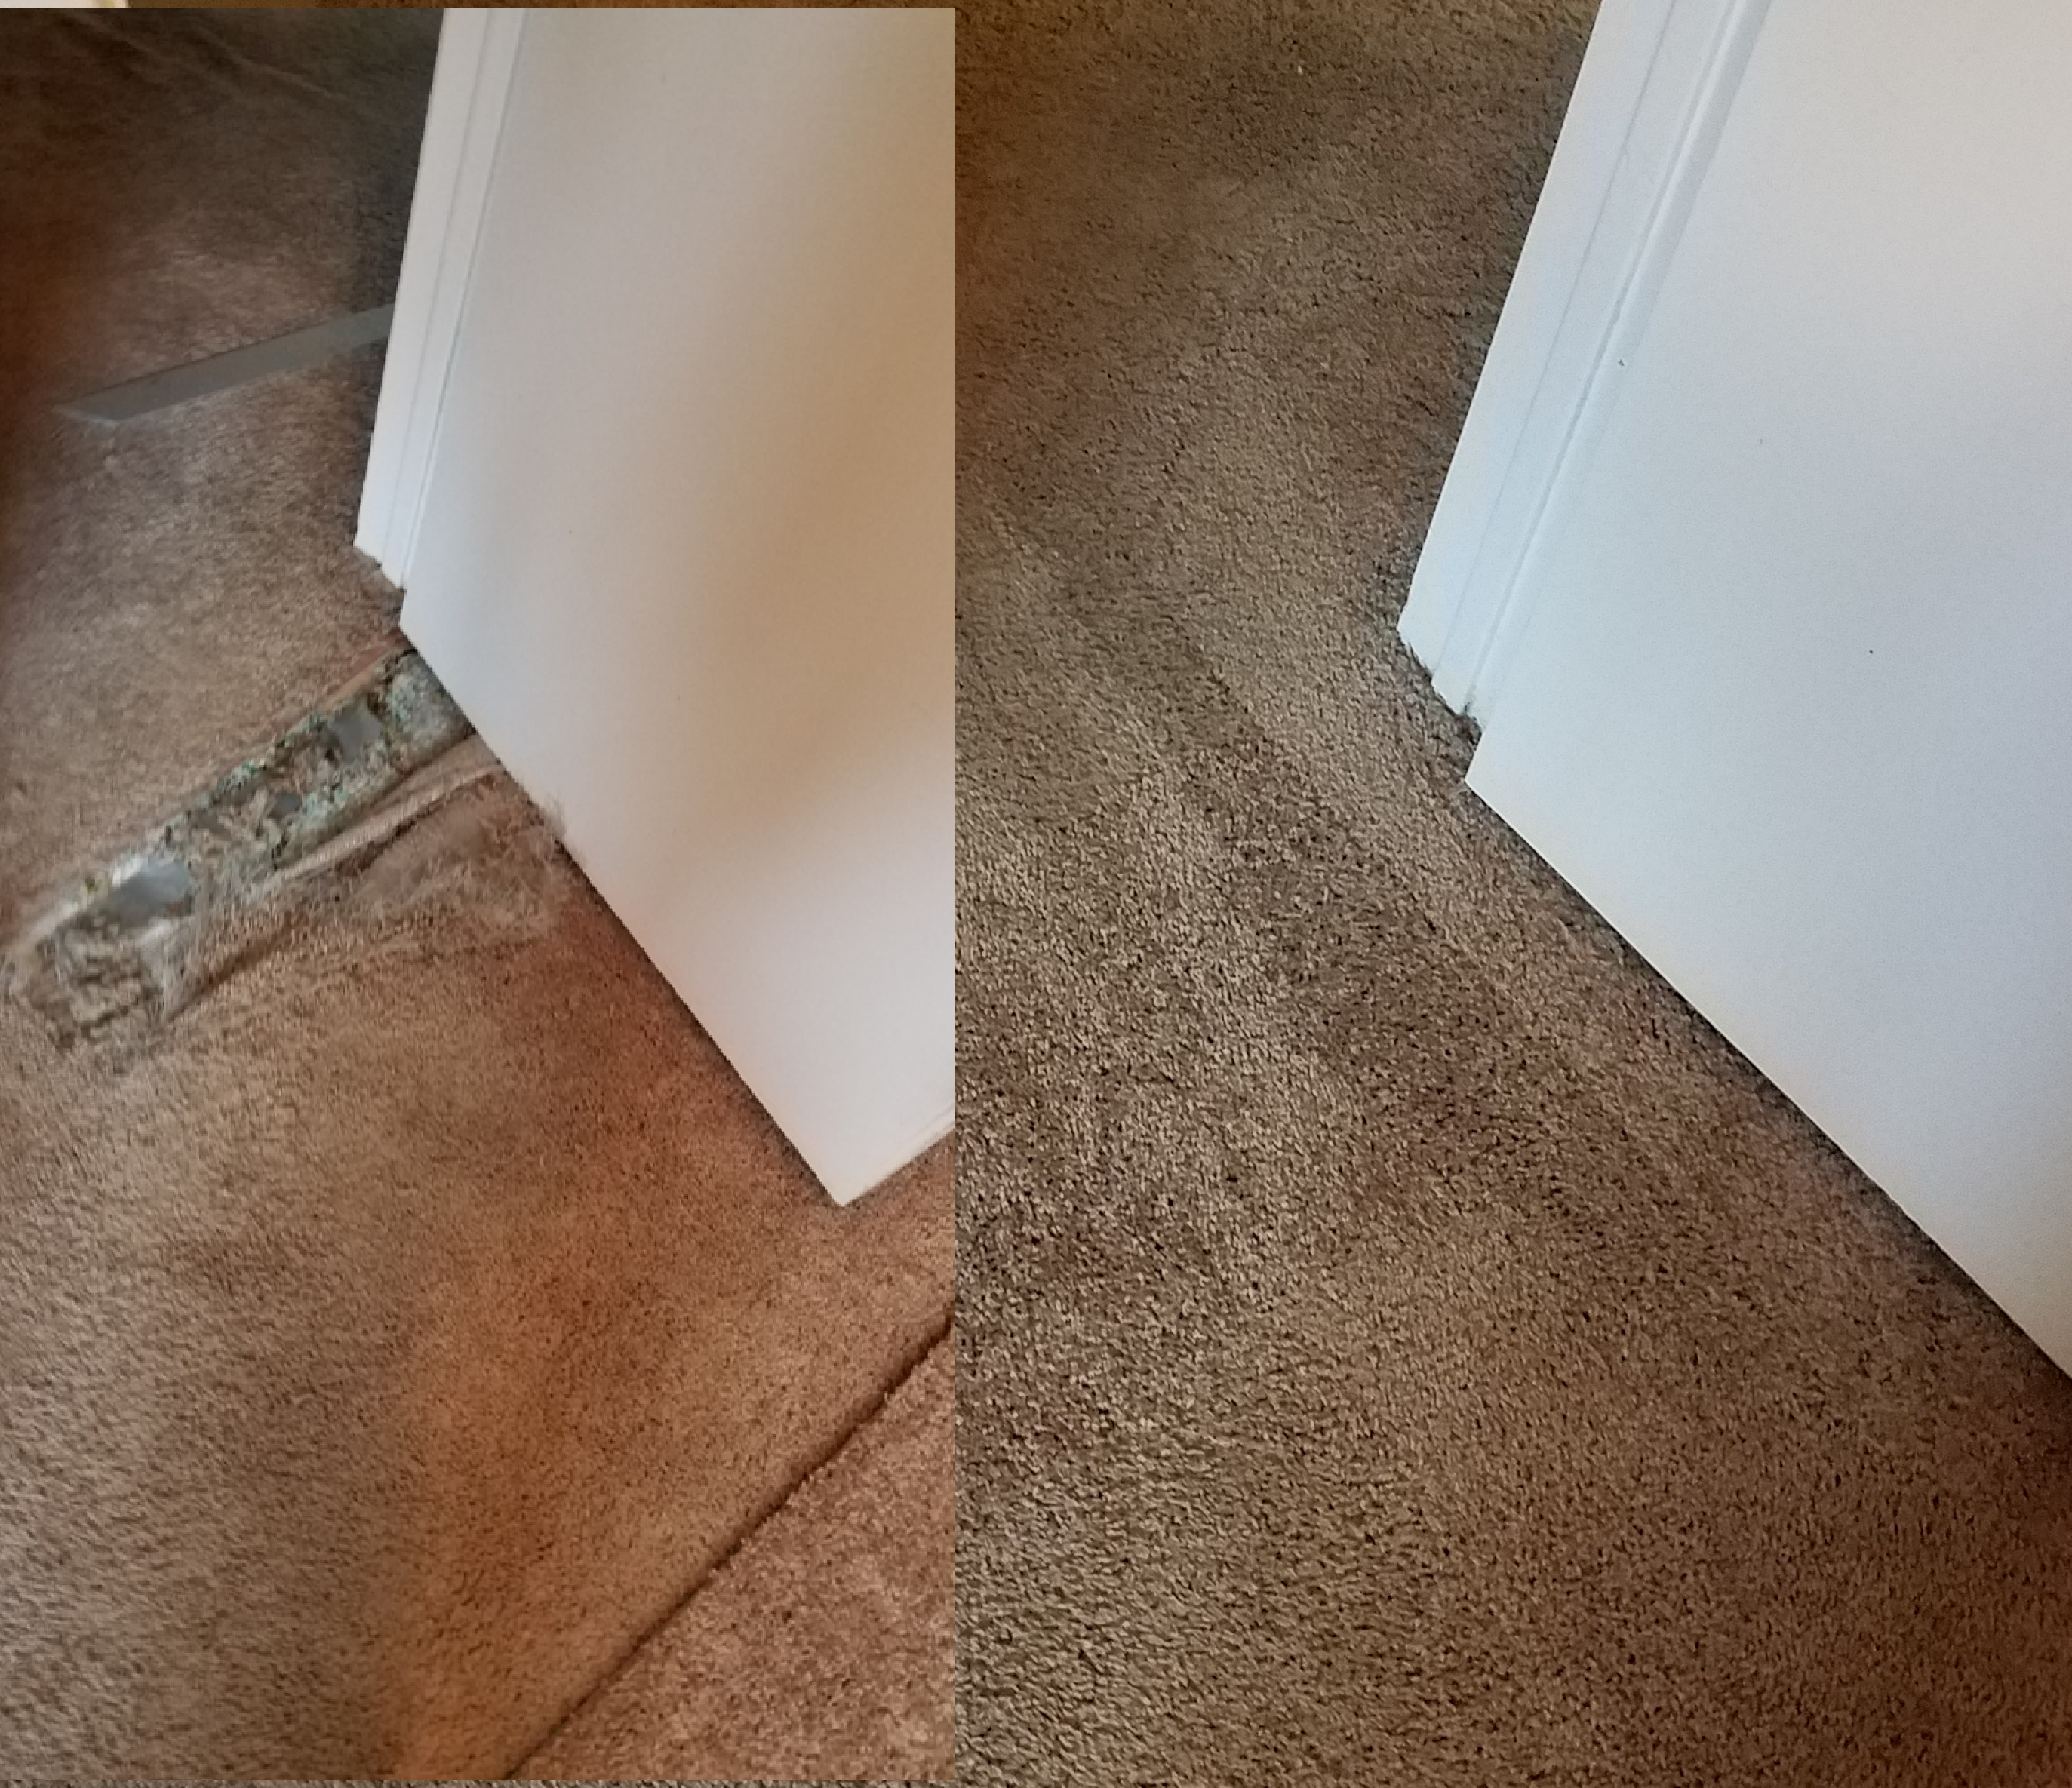 Carpet pet damage patched